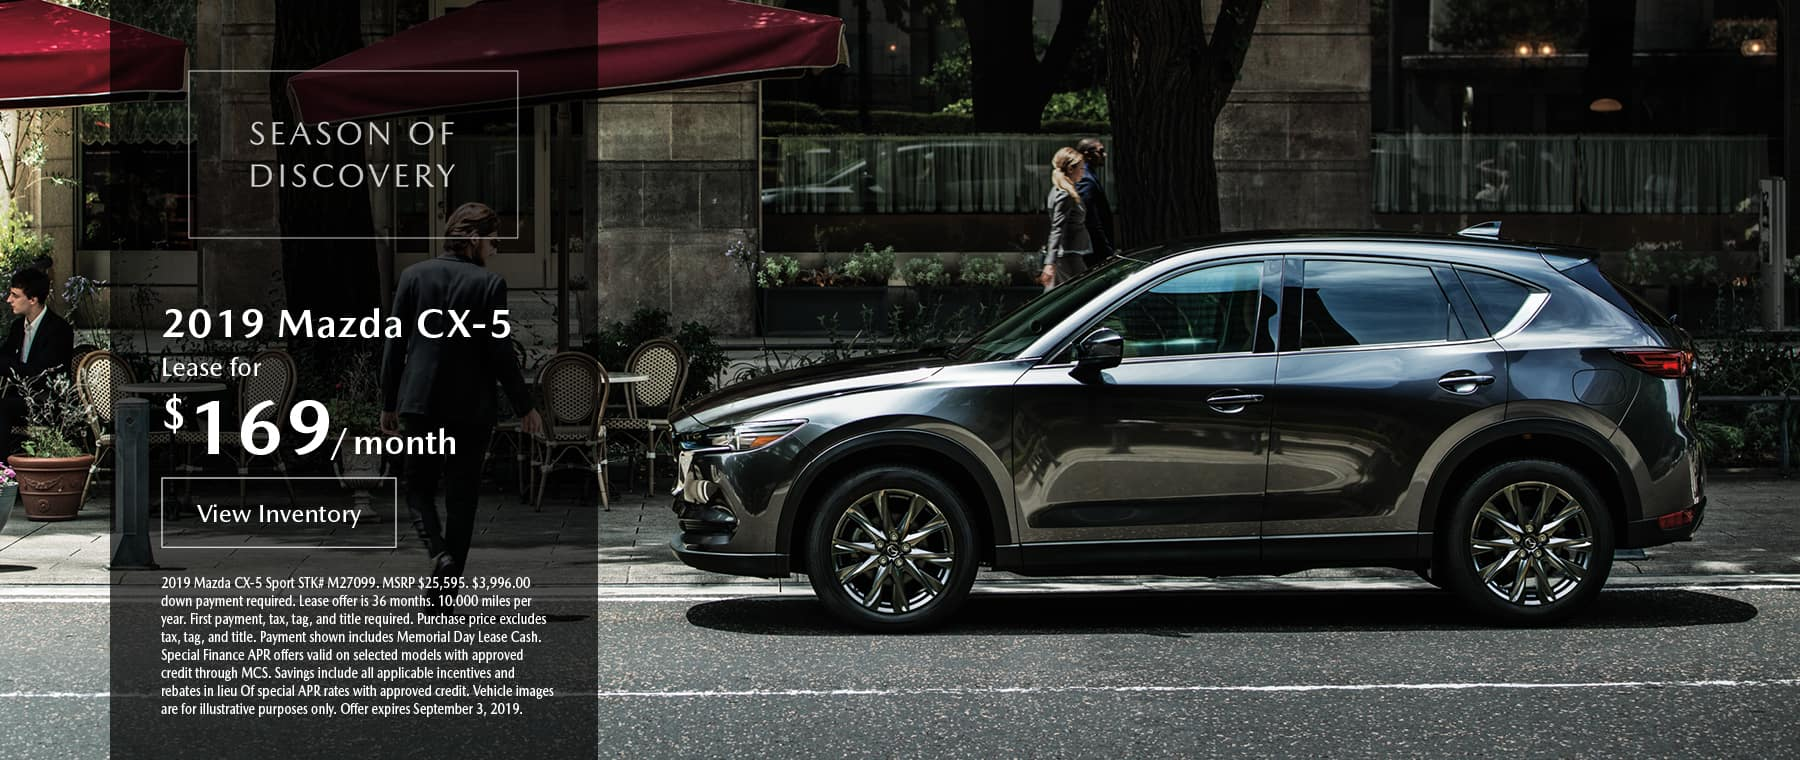 Lease the 2019 Mazda CX-5 for $169 per month, plus tax.